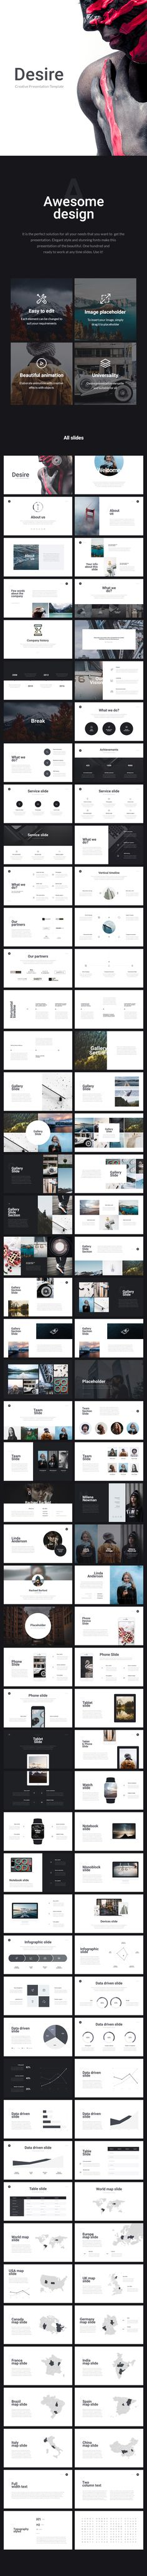 Desire PowerPoint Presentation Template